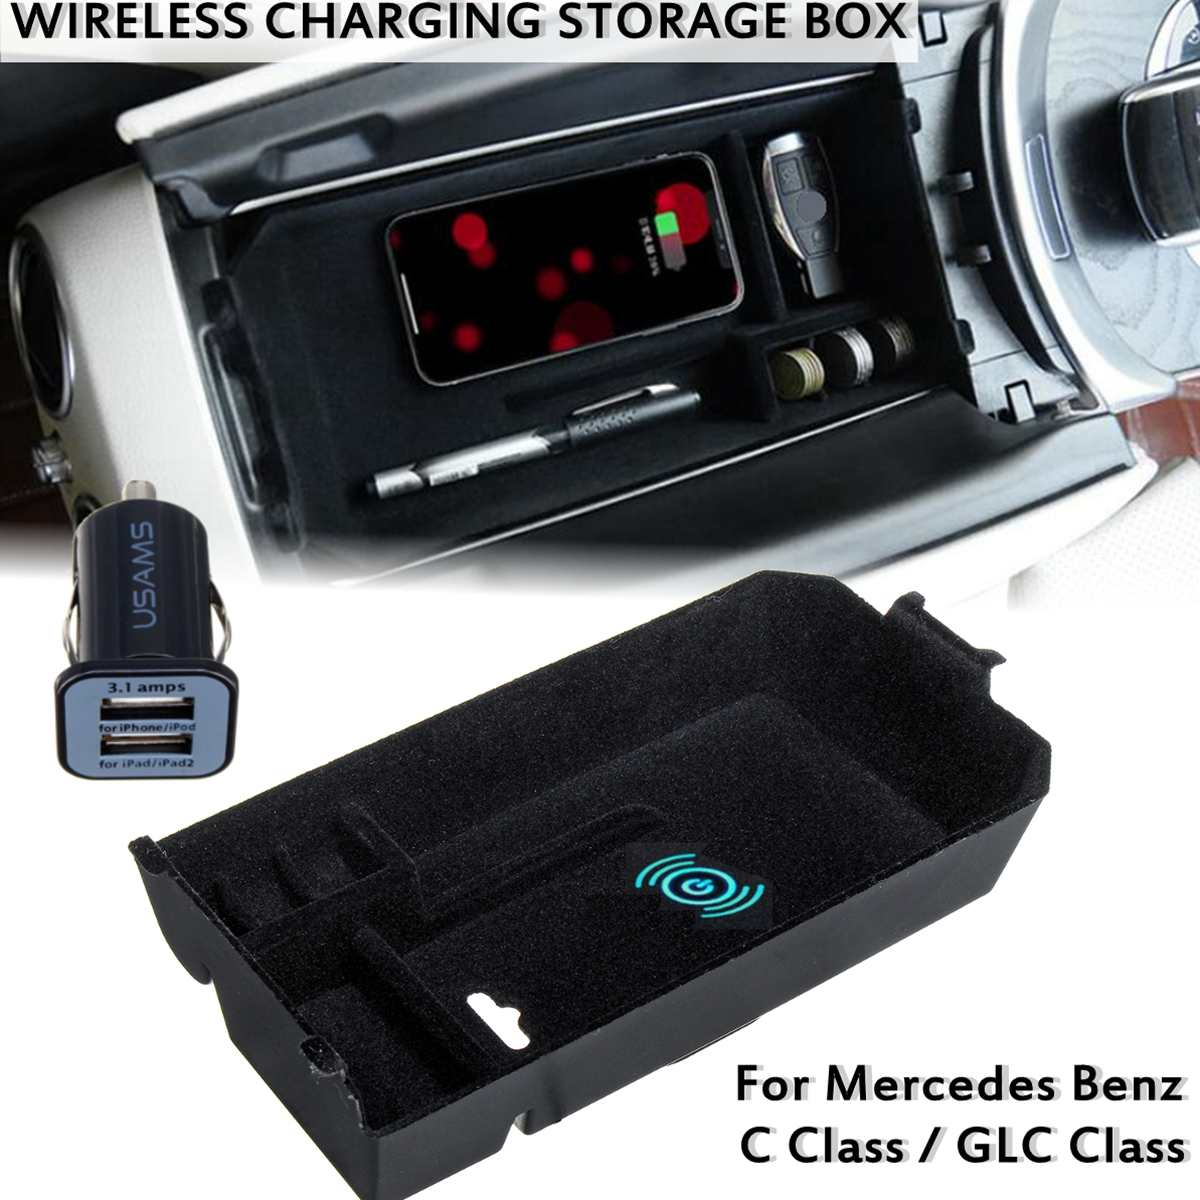 Car Wireless Charger Phone Holder Wireless Charging Central Armrest Storage Box Coin Box For Mercedes For Benz GLC C Class LHD